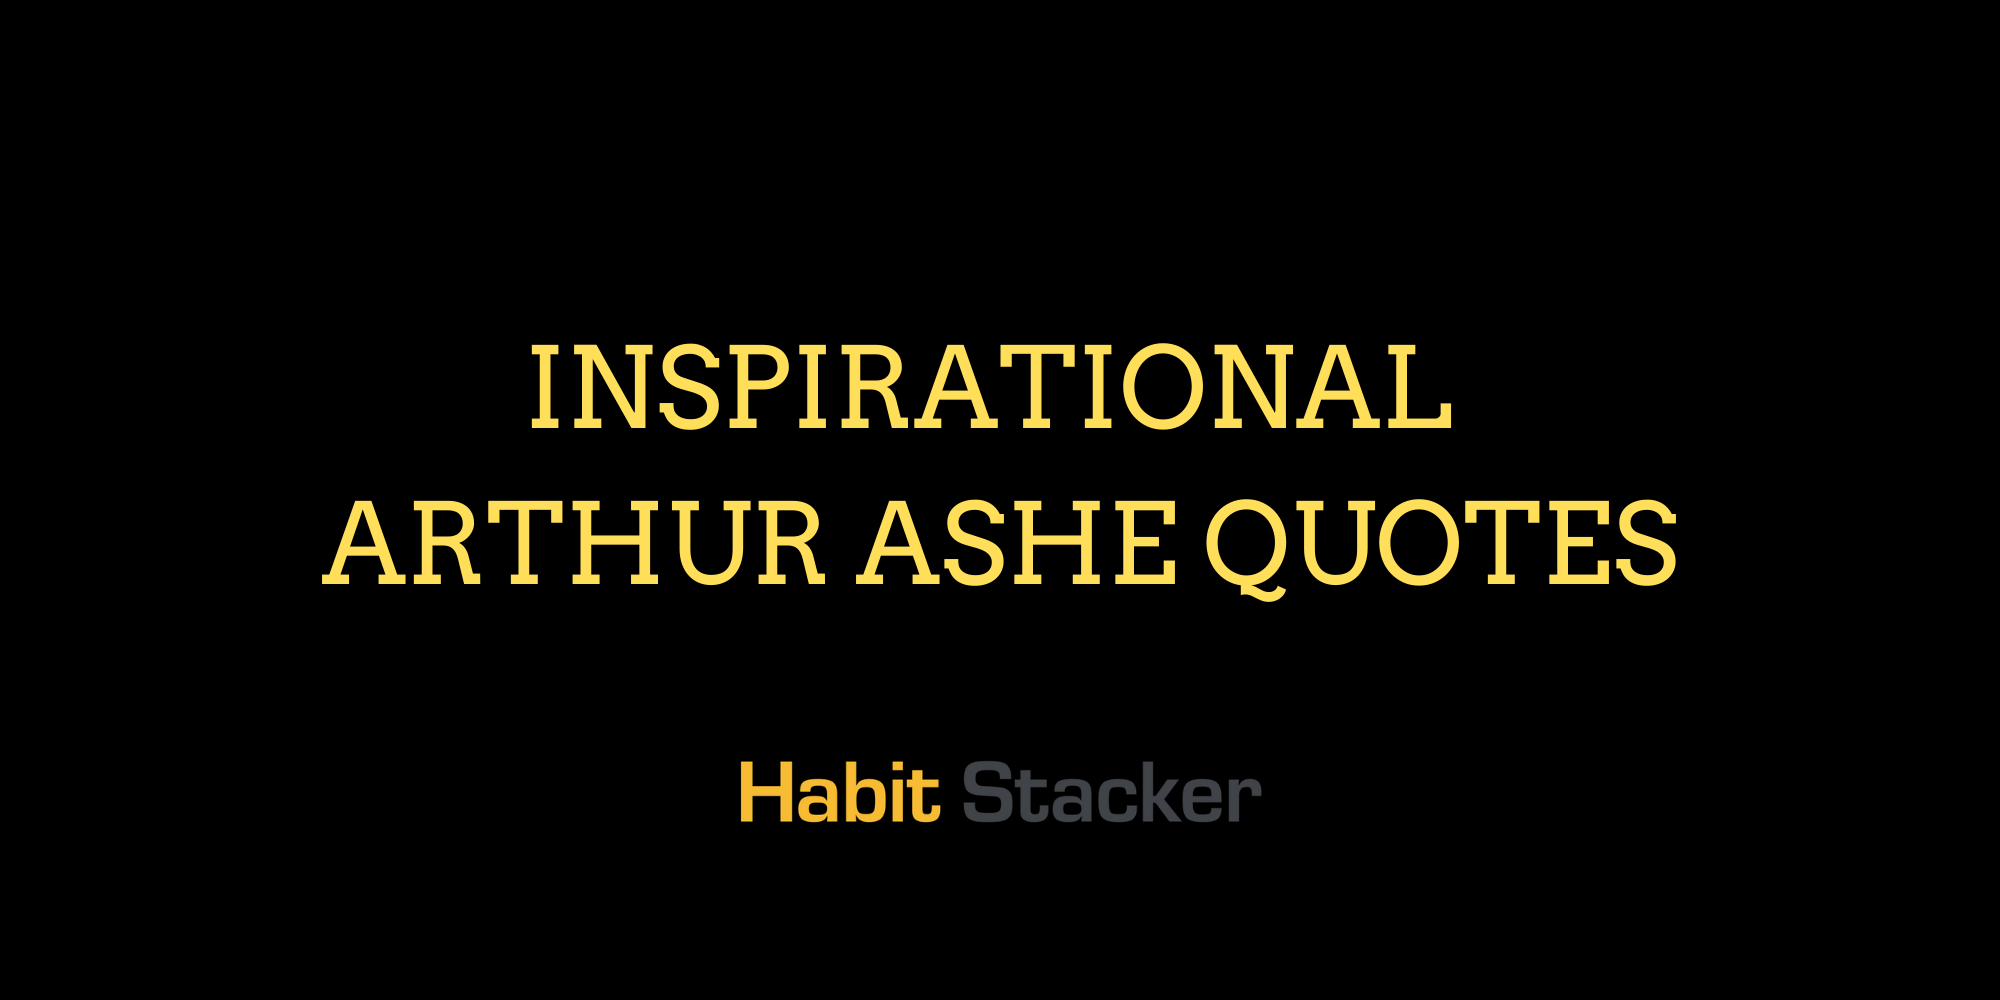 Inspirational Arthur Ashe Quotes